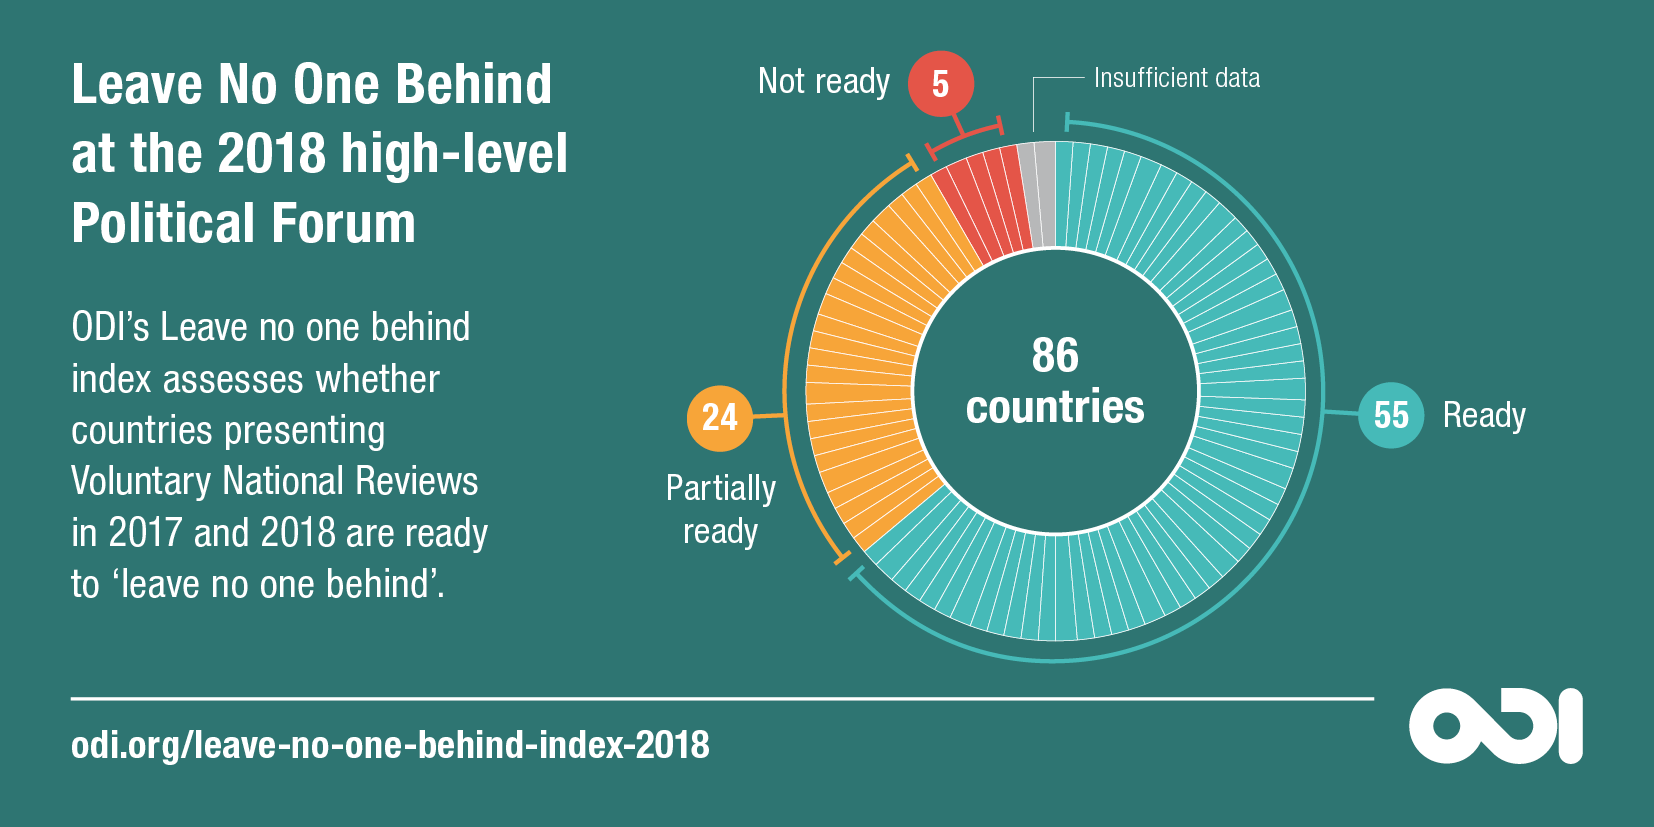 'Leave no one behind' at the 2018 High-level Political Forum. Photo: ODI